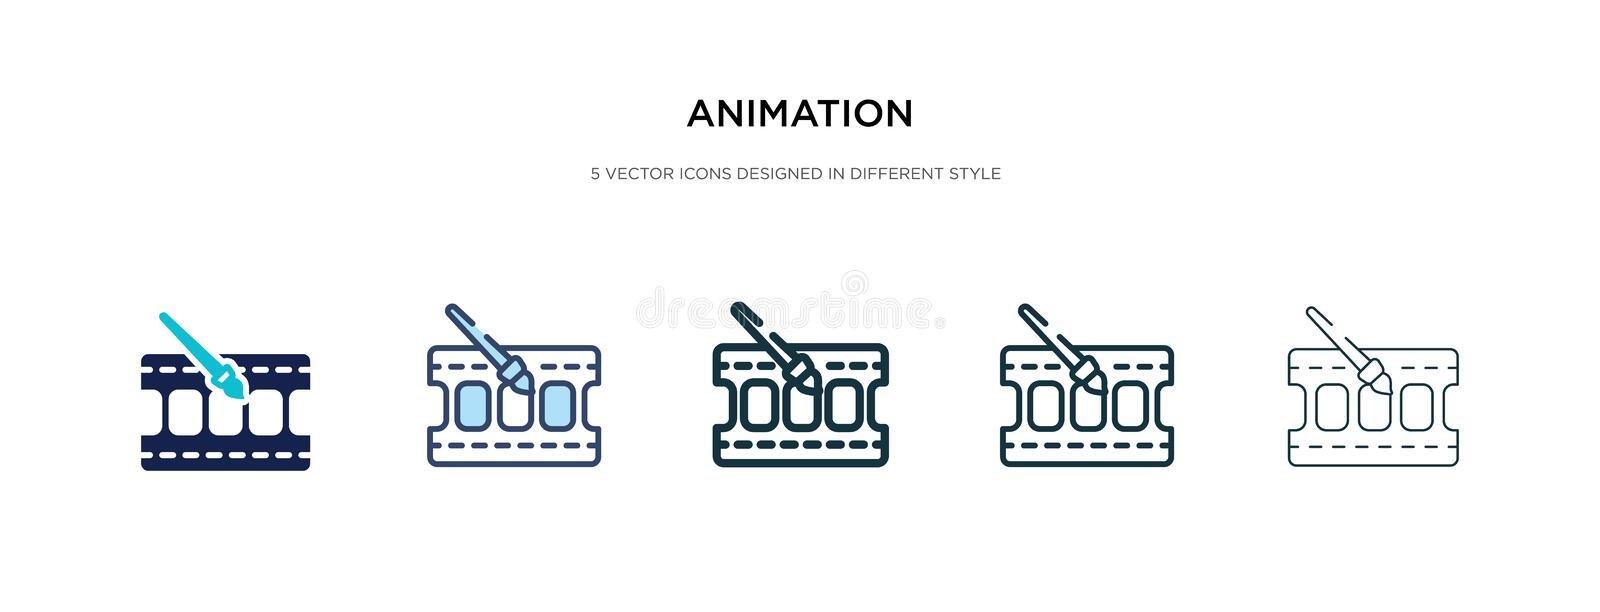 Animation icon in different style vector illustration. two colored and black animation vector icons designed in filled, outline, stock illustration